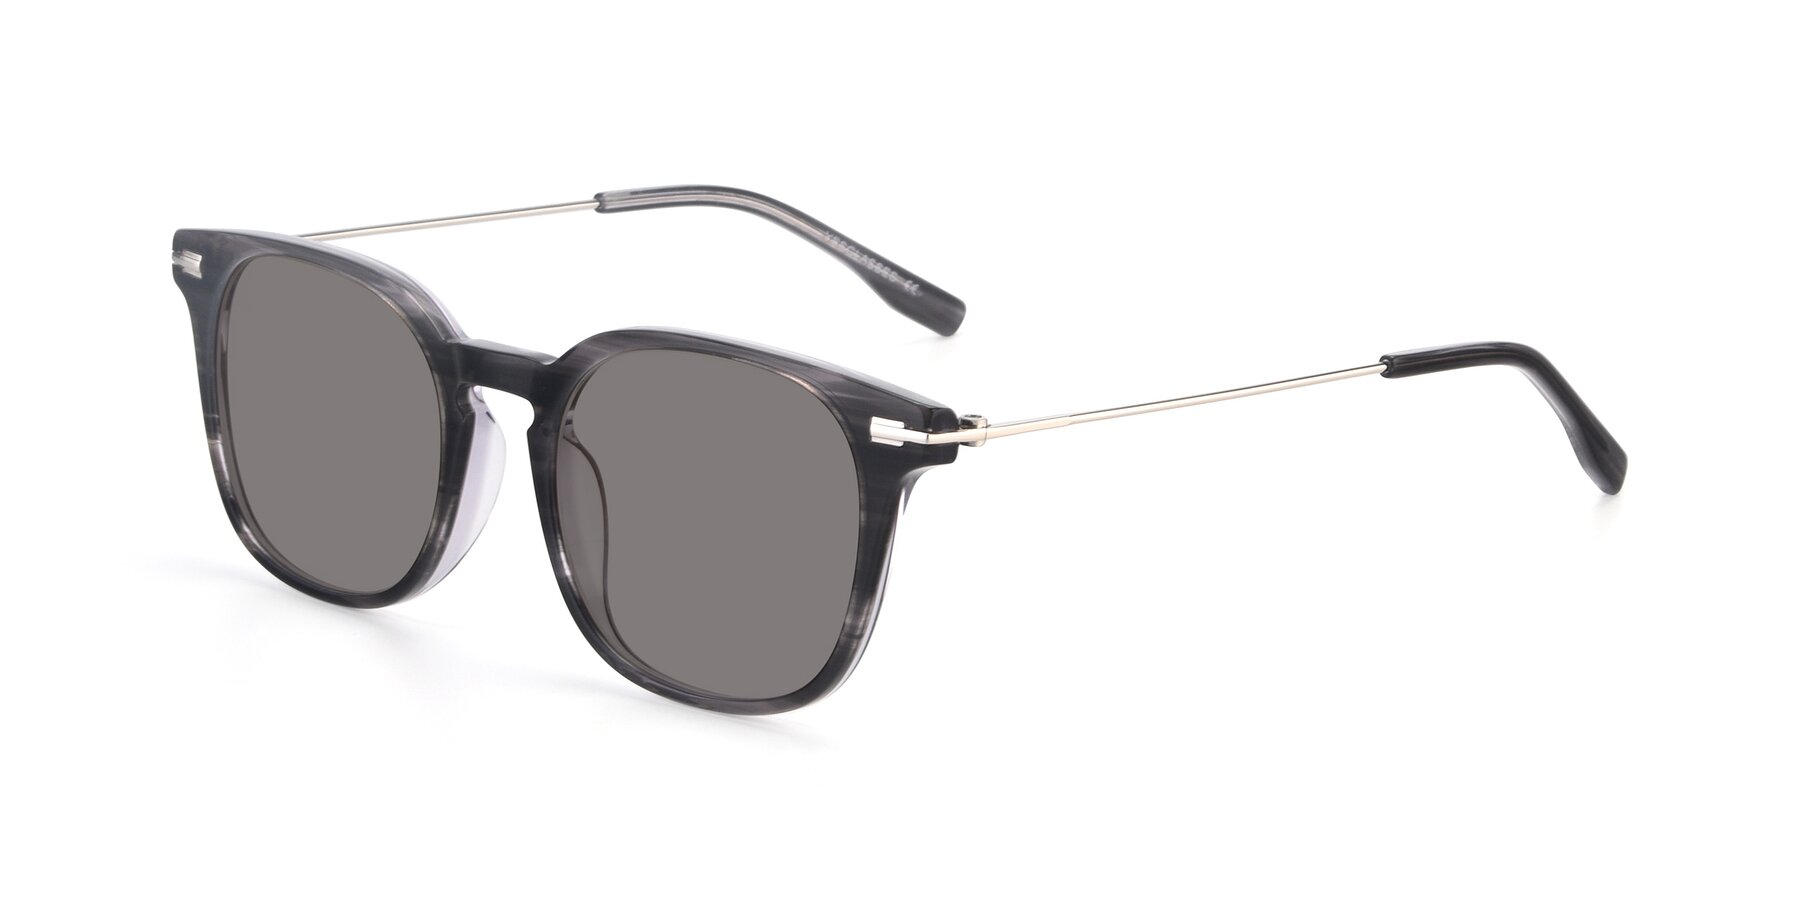 Angle of 17711 in Grey with Medium Gray Tinted Lenses